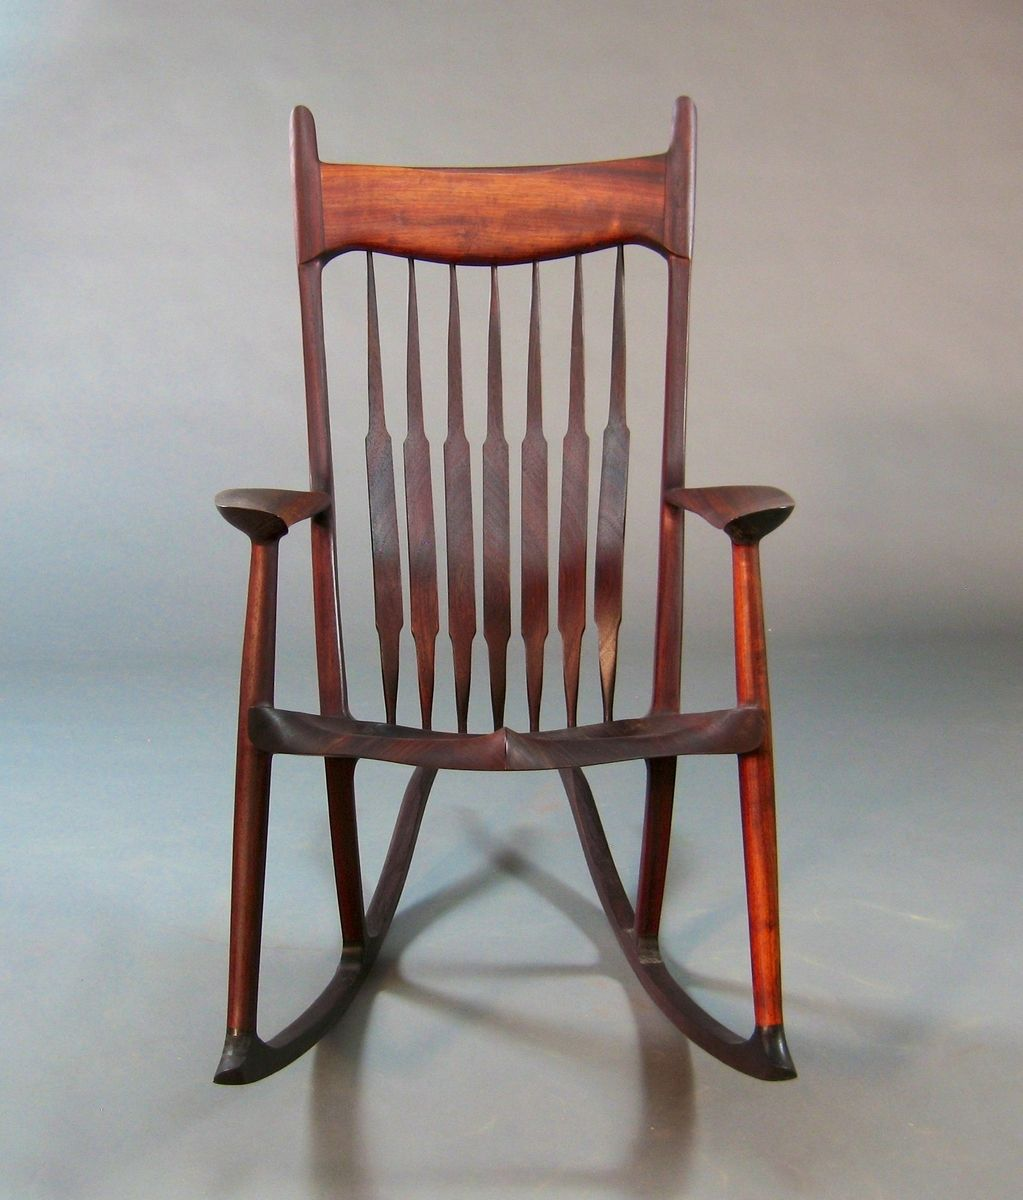 Handmade Pauduk Maloof Inspired Rocking Chair By Gerspach